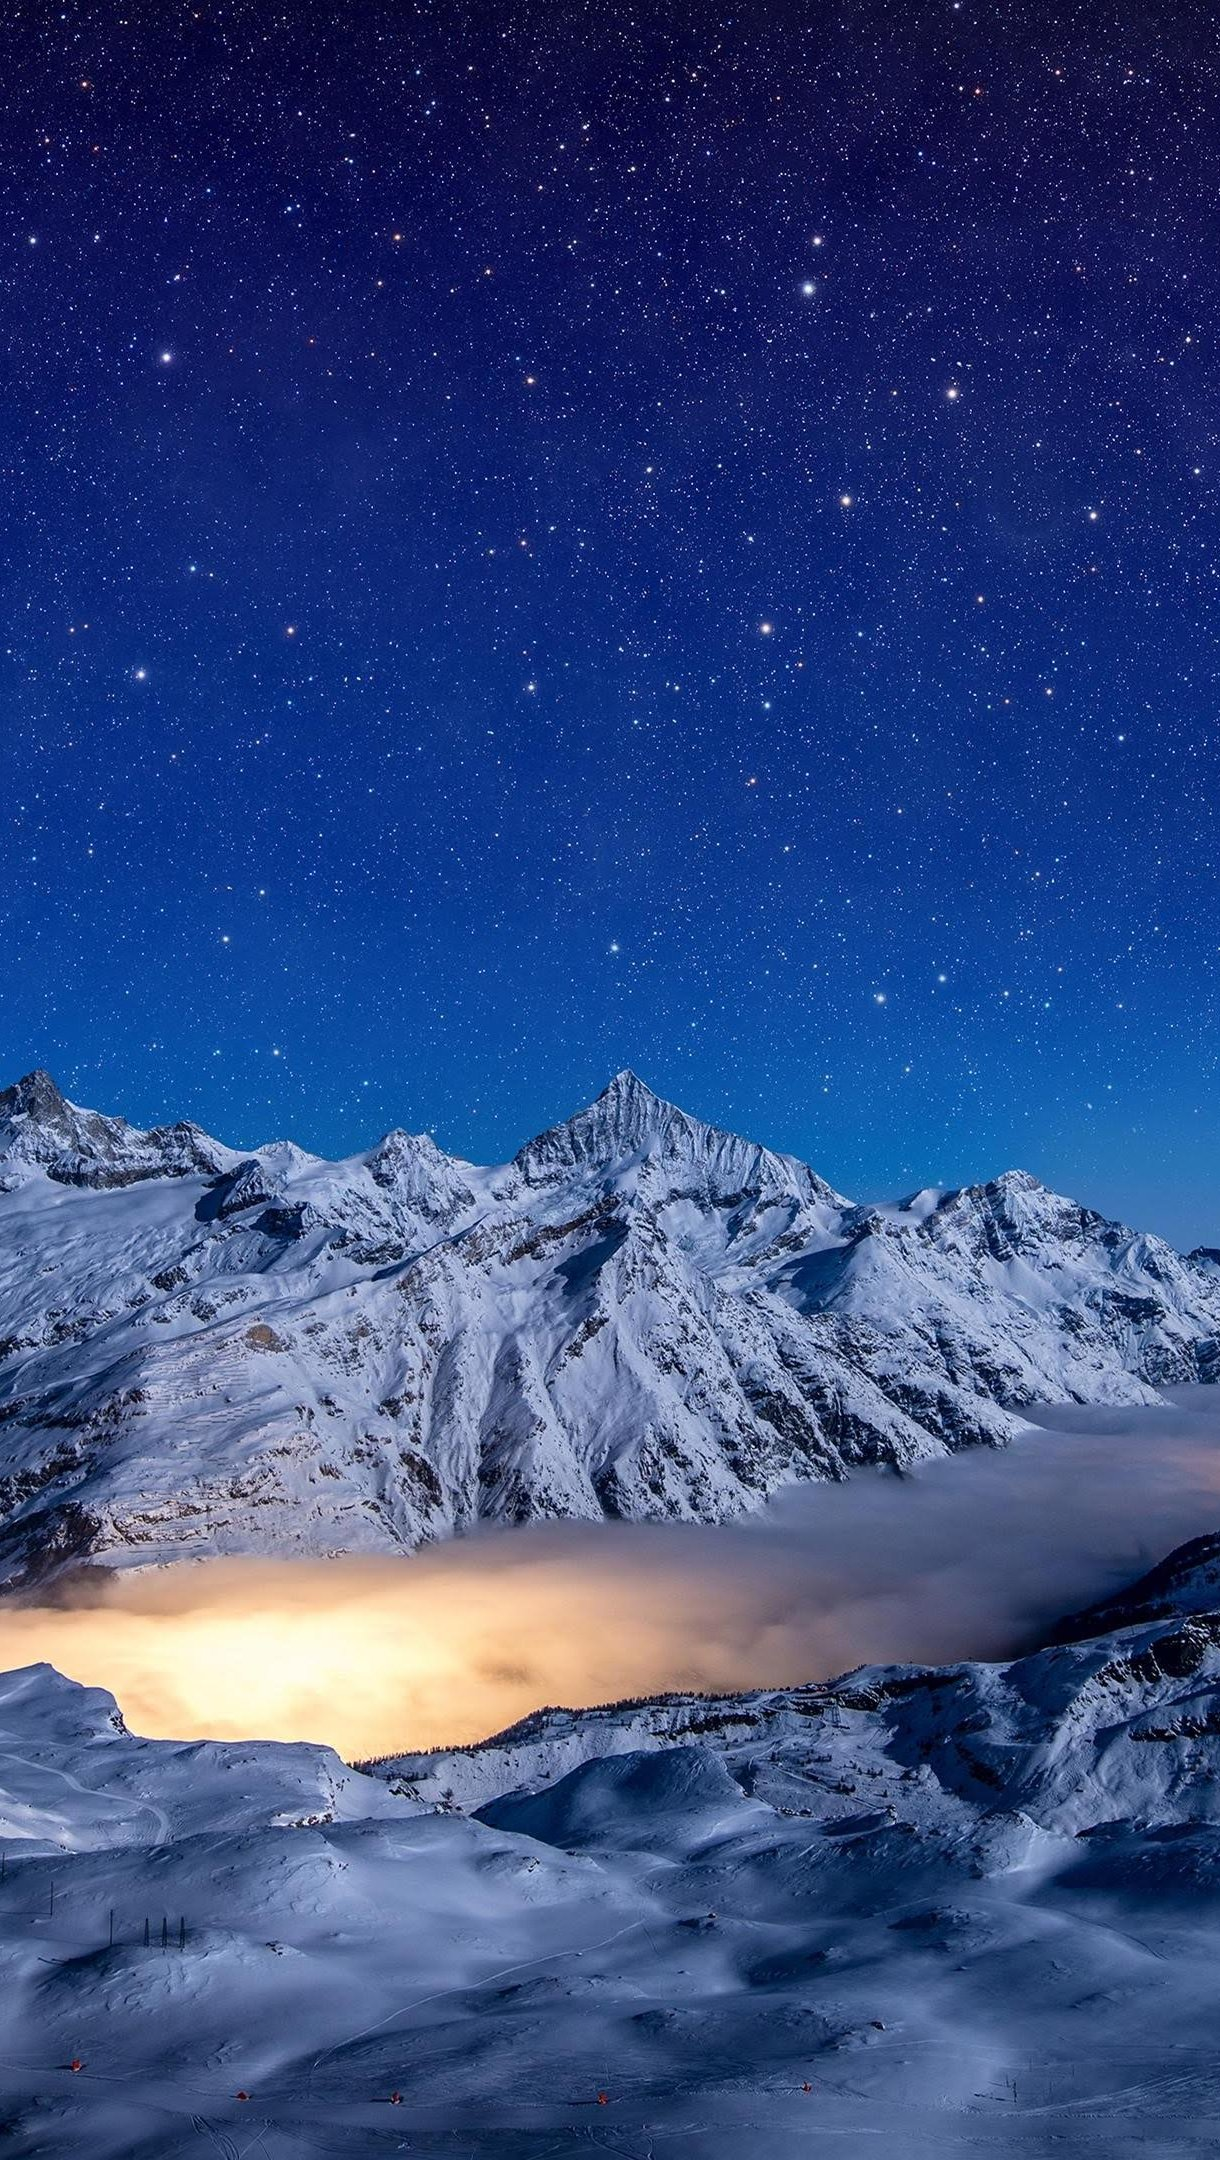 Wallpaper Starry night snow covered mountains Vertical